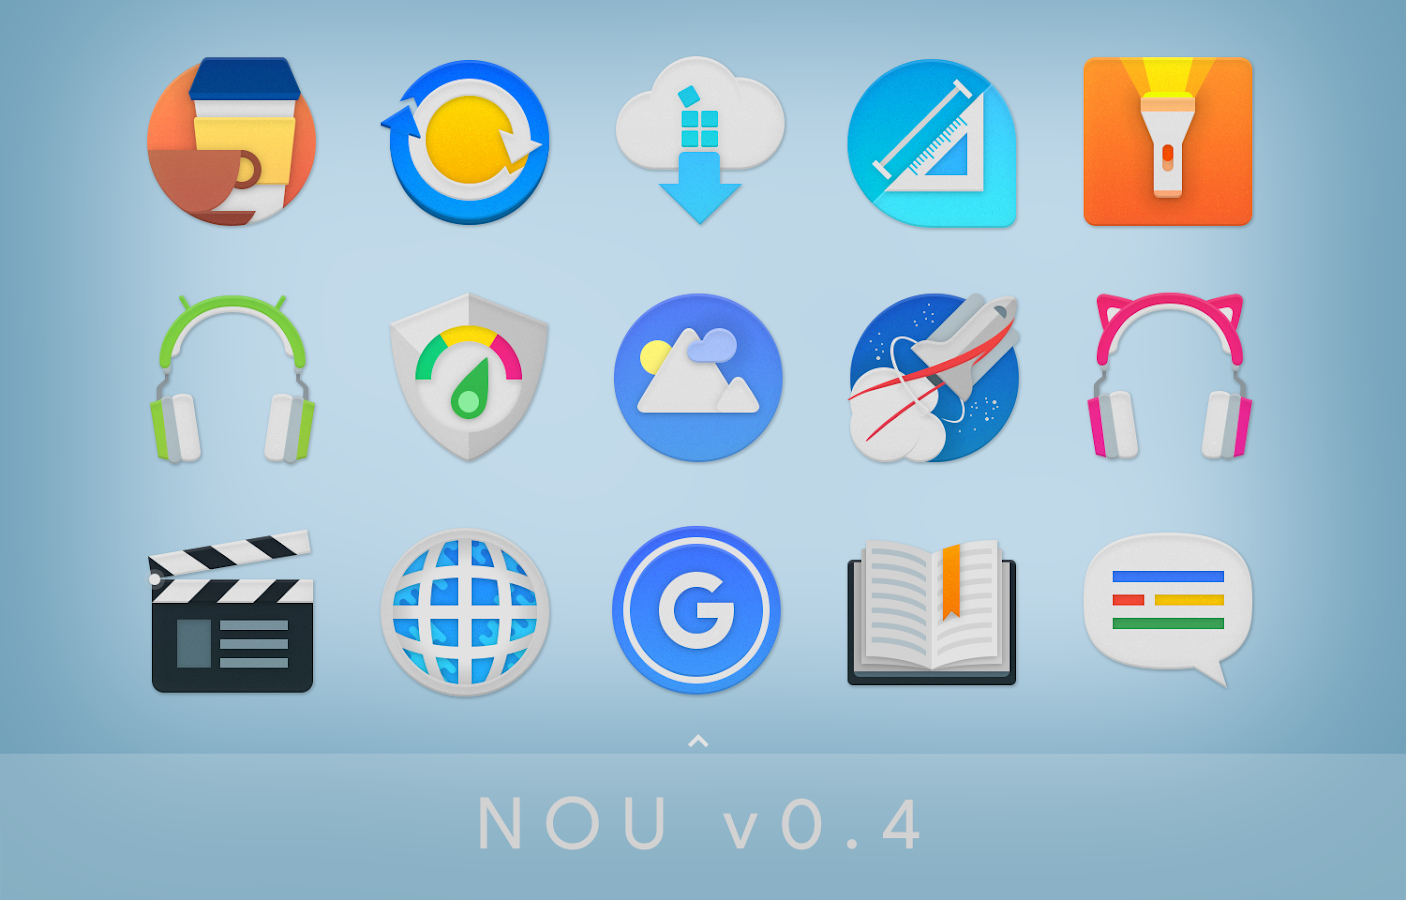 NOU - Icon Pack Screenshot 6